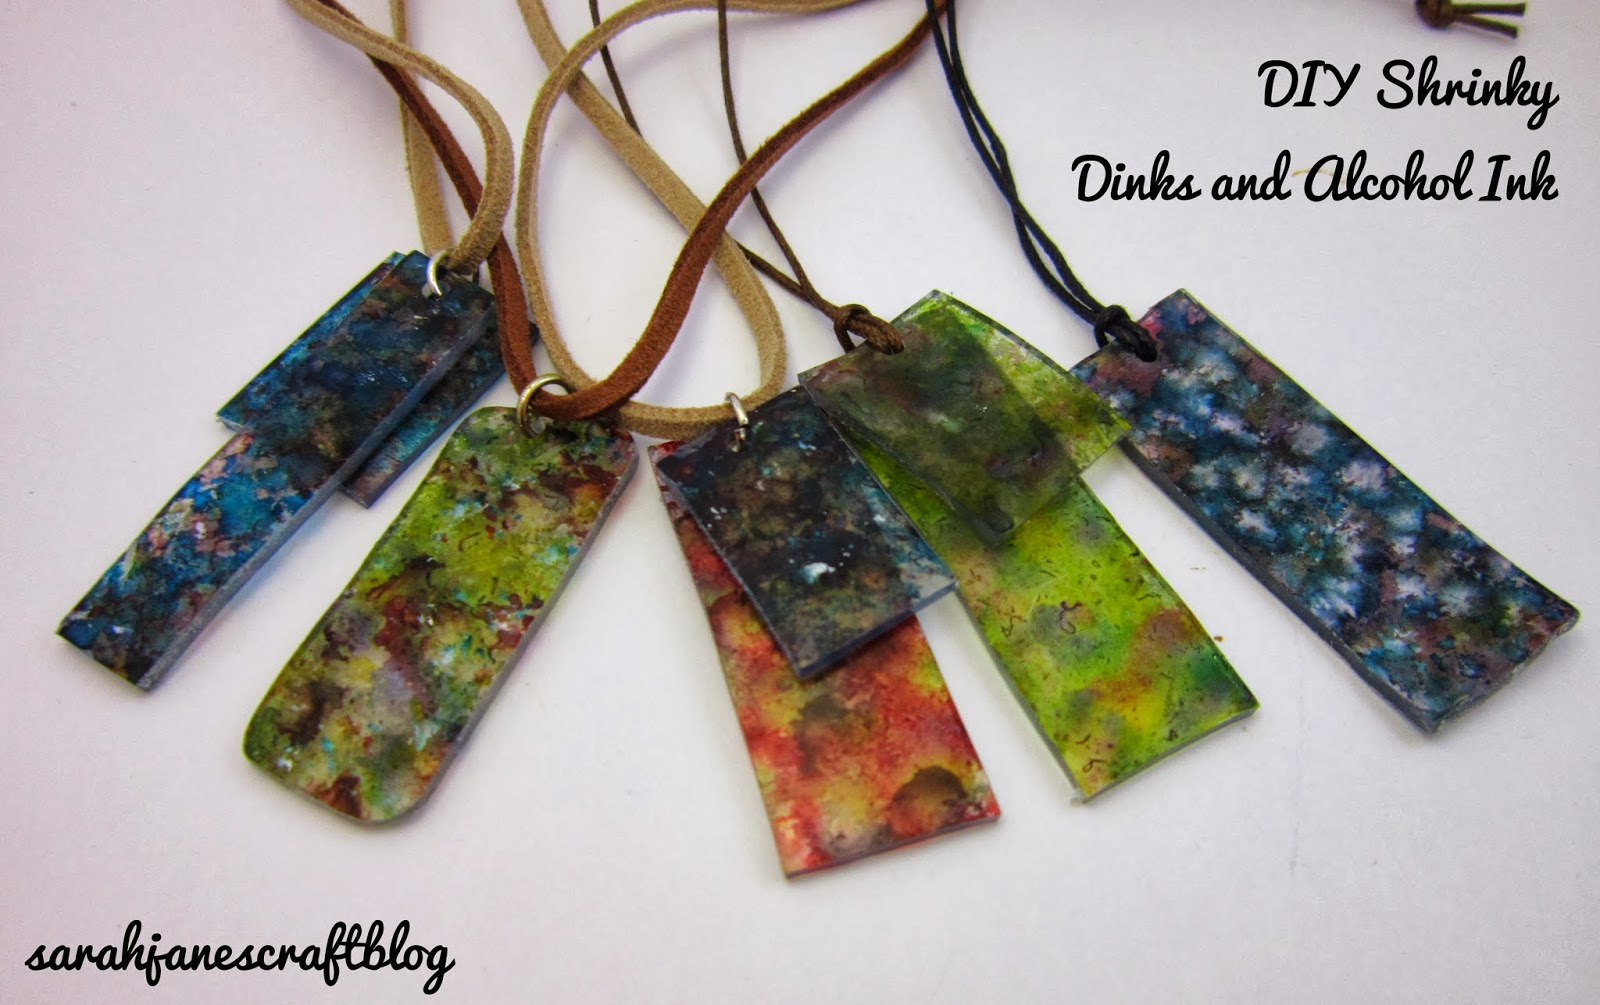 Sarah Jane S Craft Blog Diy Shrinky Dinks And Alcohol Ink